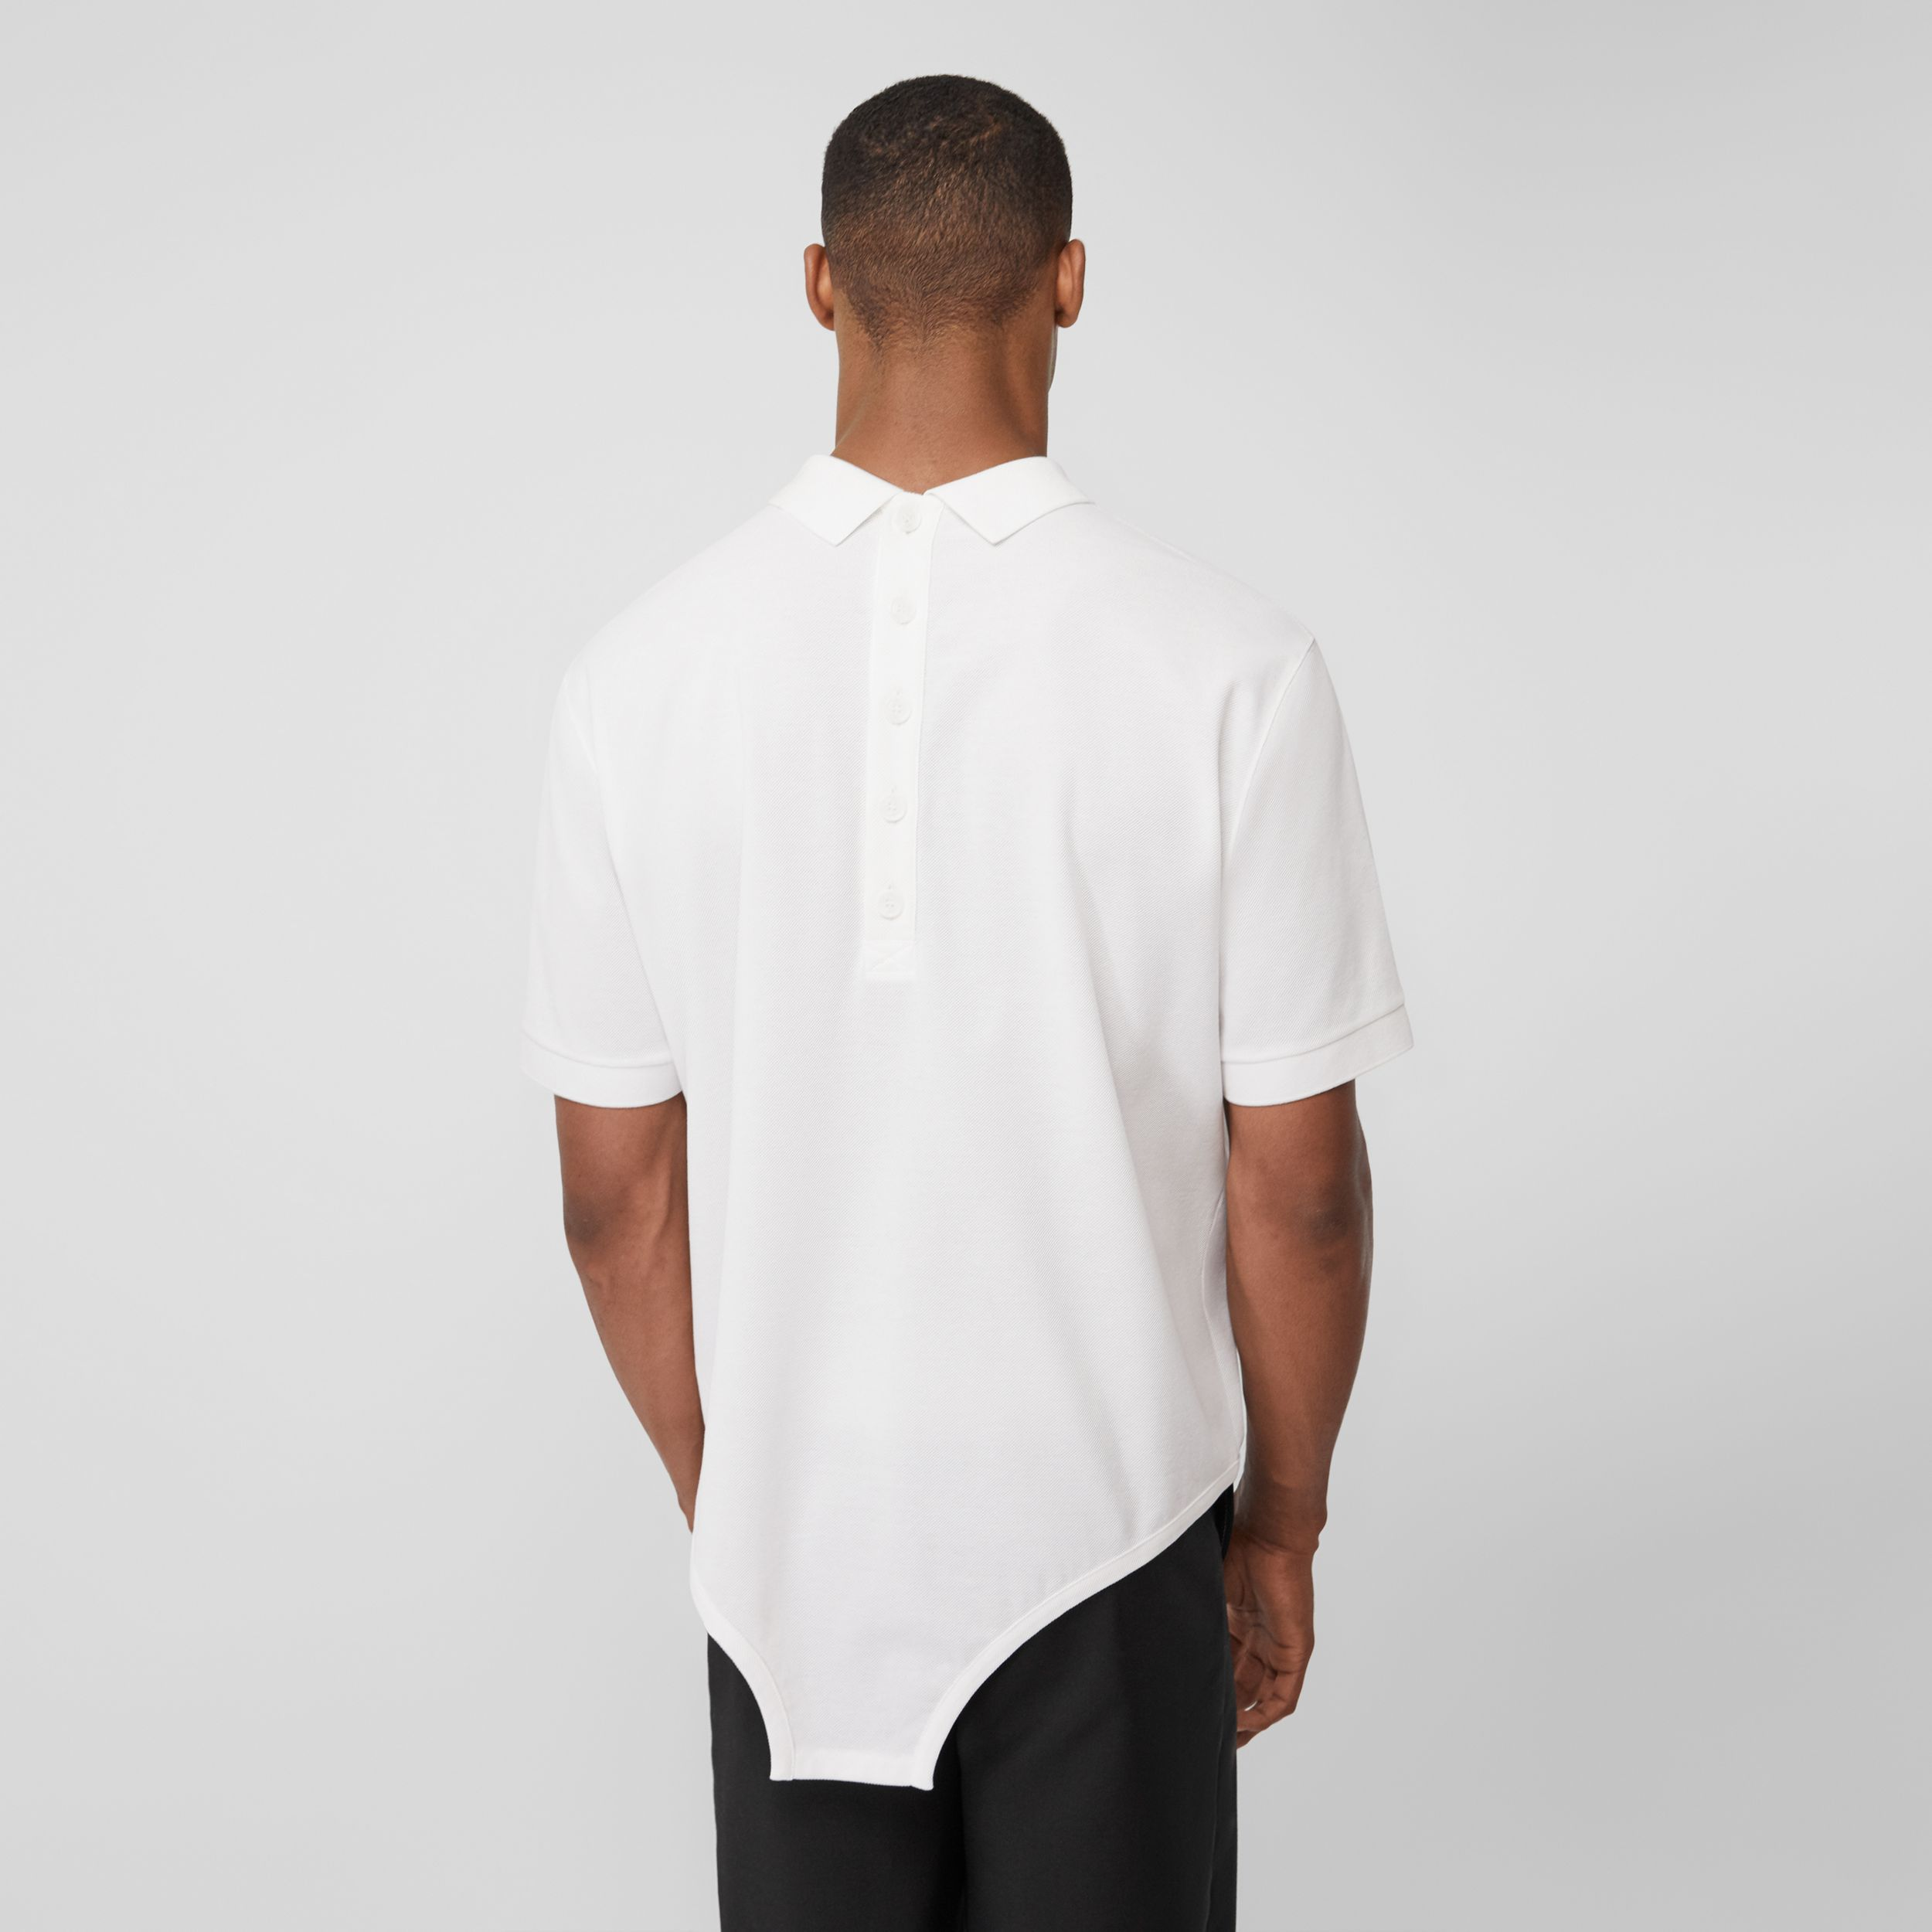 Cut-out Hem Cotton Reconstructed Polo Shirt in Optic White - Men | Burberry - 3